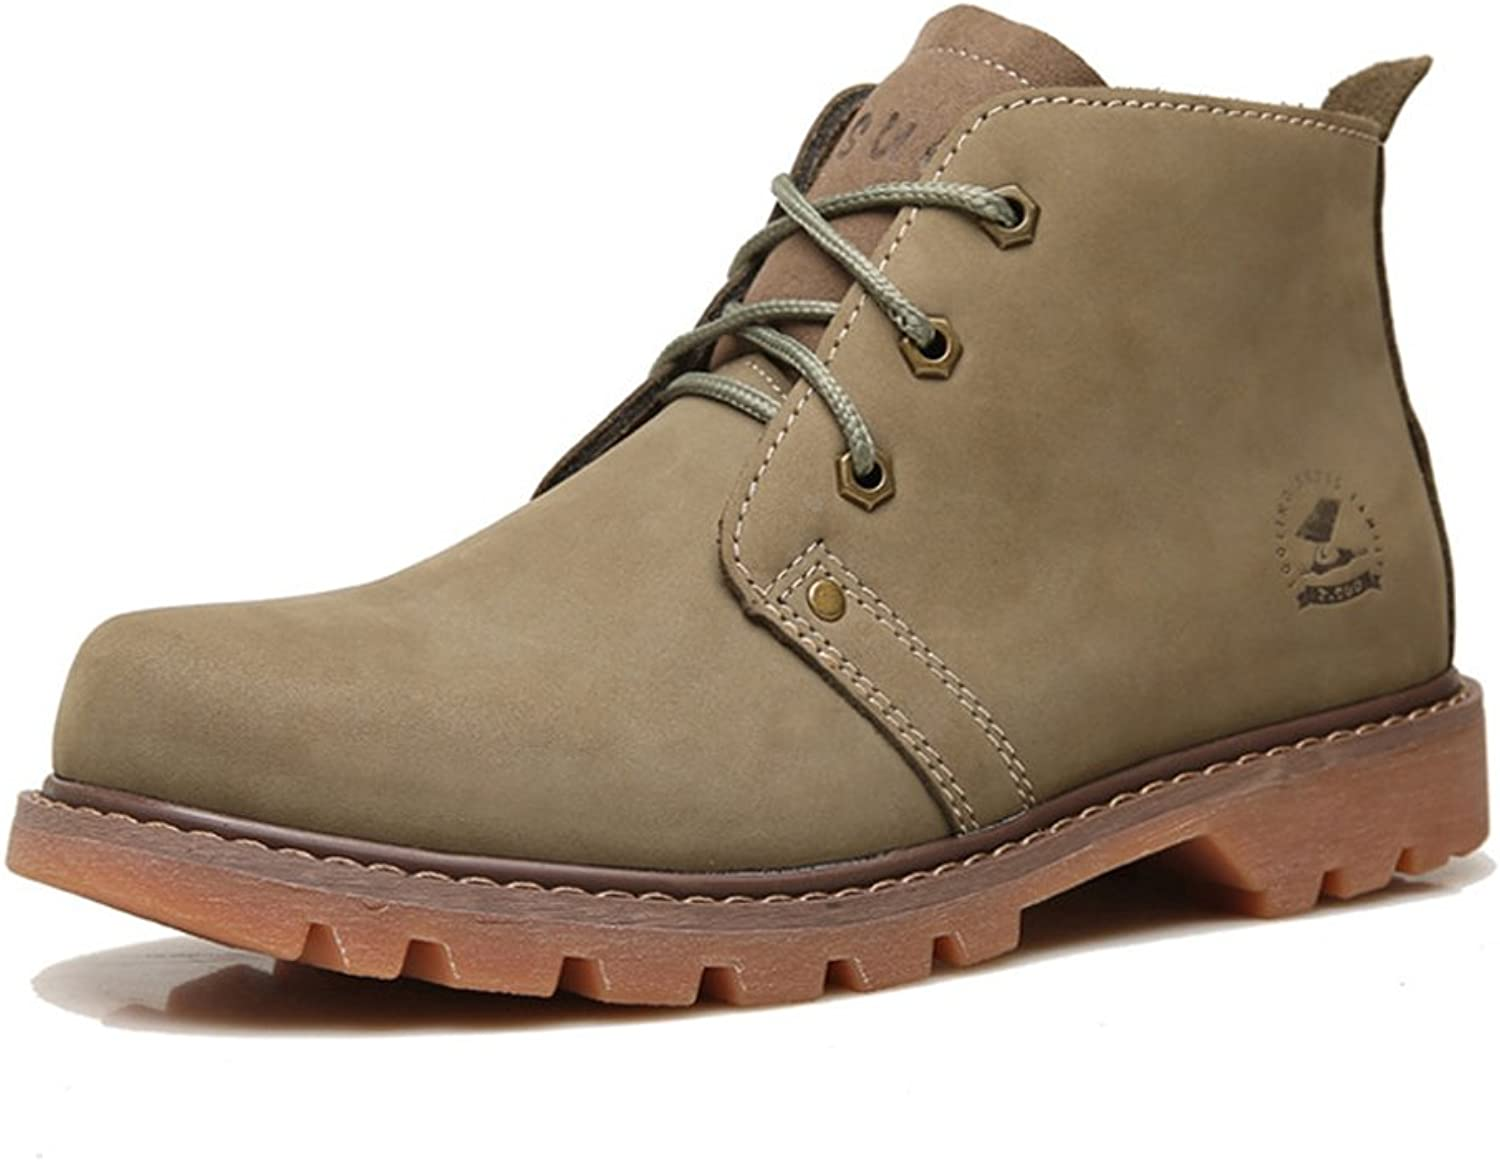 Choolike Cow Leather Martin Boots,Life in Britain,Winter Leisure shoes,Show Style and Personality